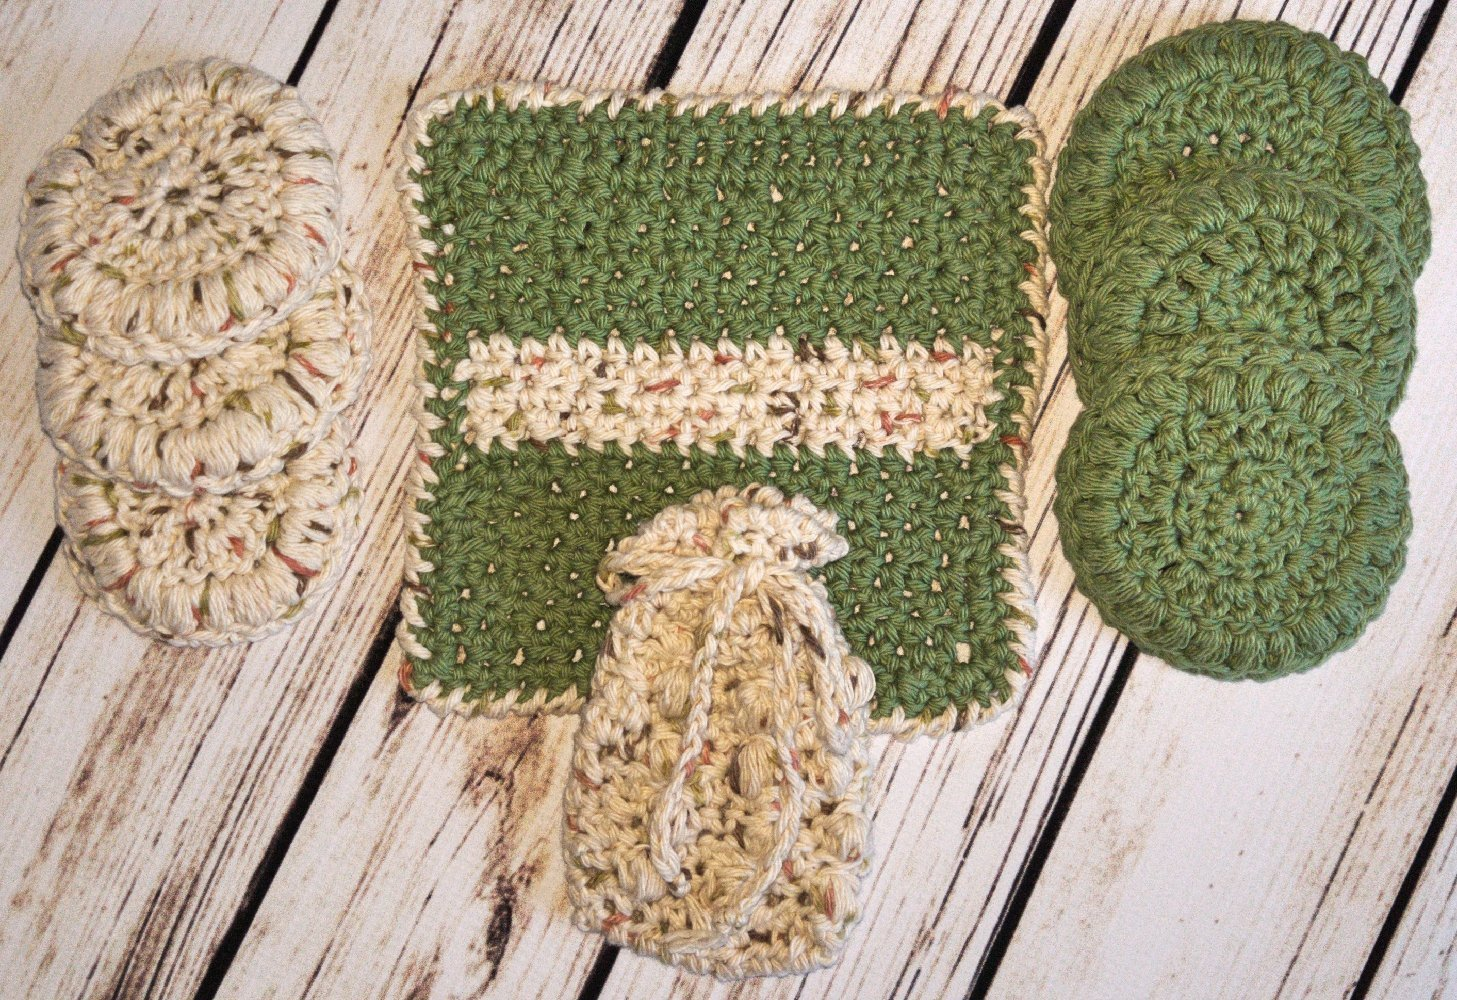 Unisex Green and Tan Speckled Invigorating yet Gentle Face and Body Poufs. Hand crocheted spa or bath set.Great teacher appreciation gift. by Cloud 9 Crochet